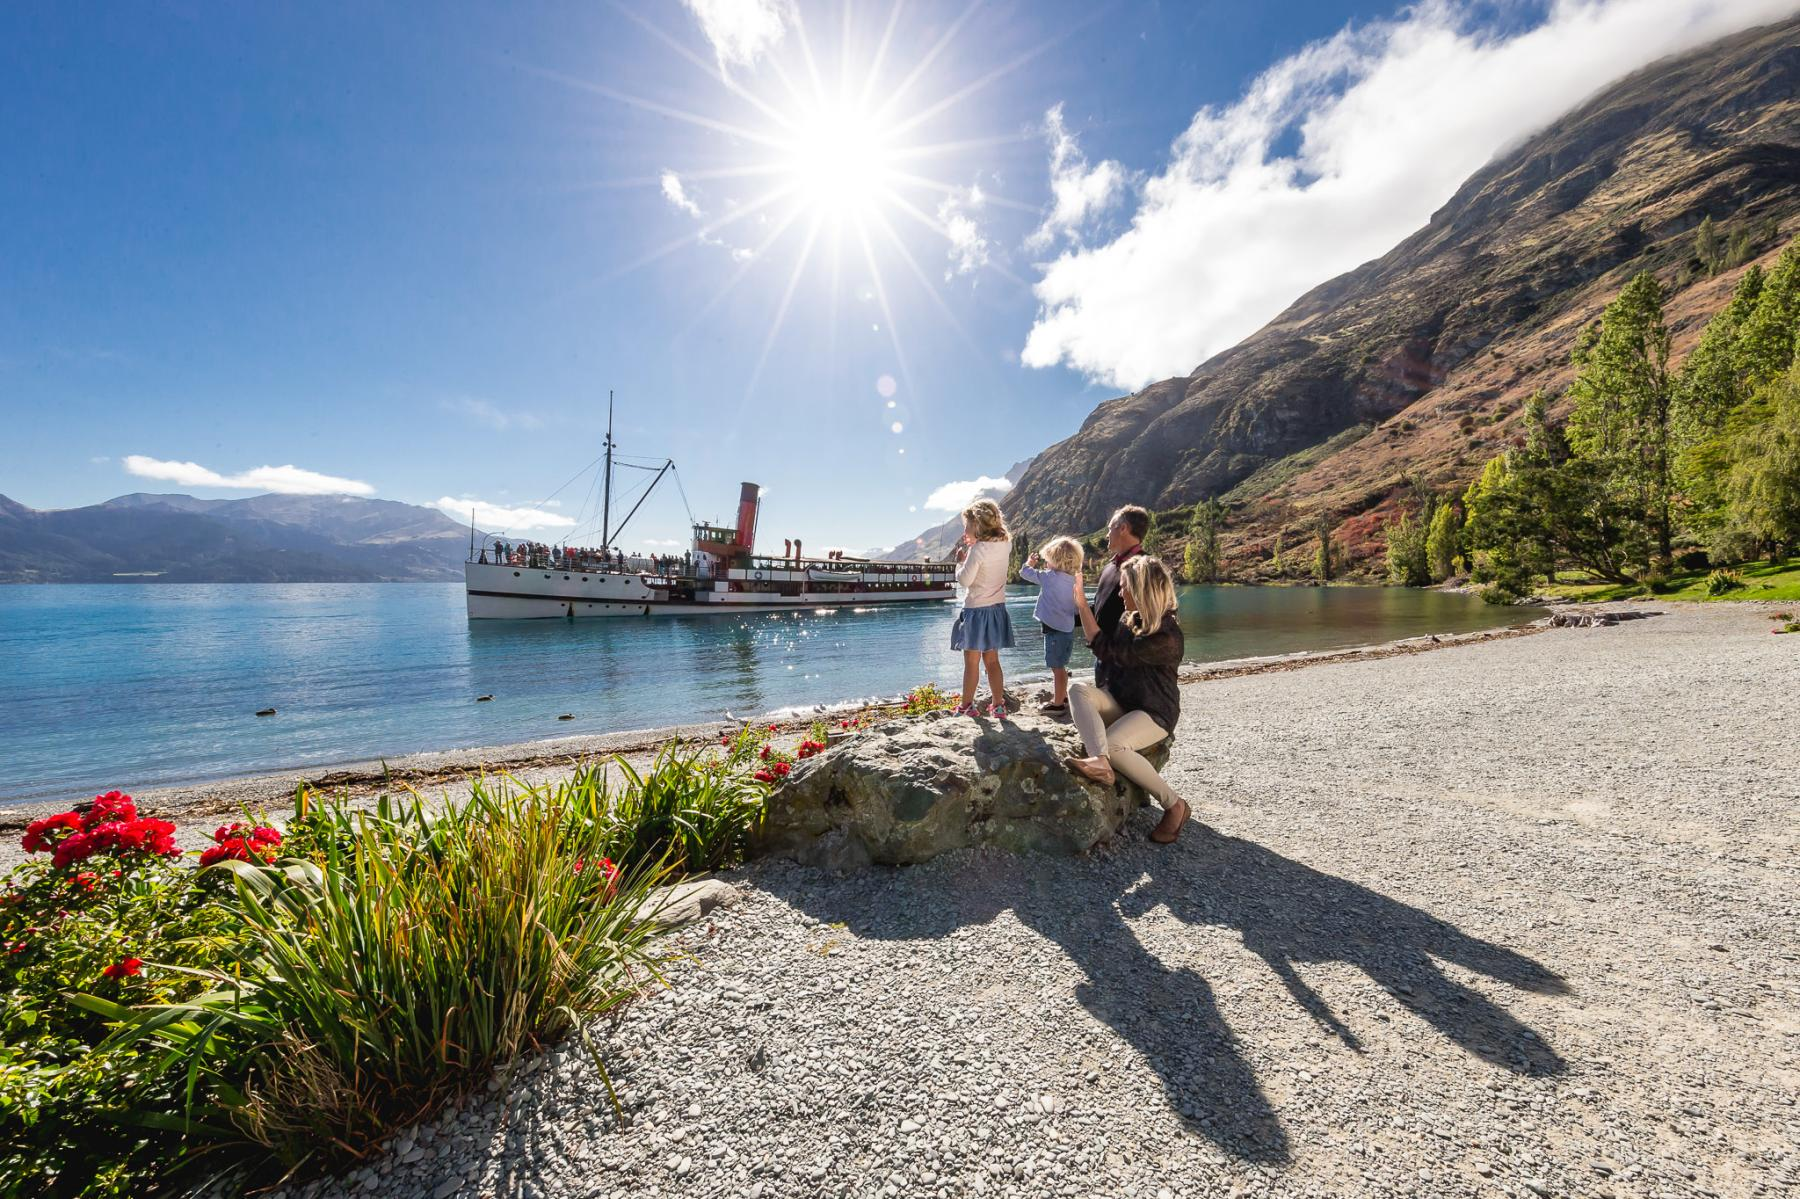 Family at Walter Peak watching the TSS Earnslaw steamship